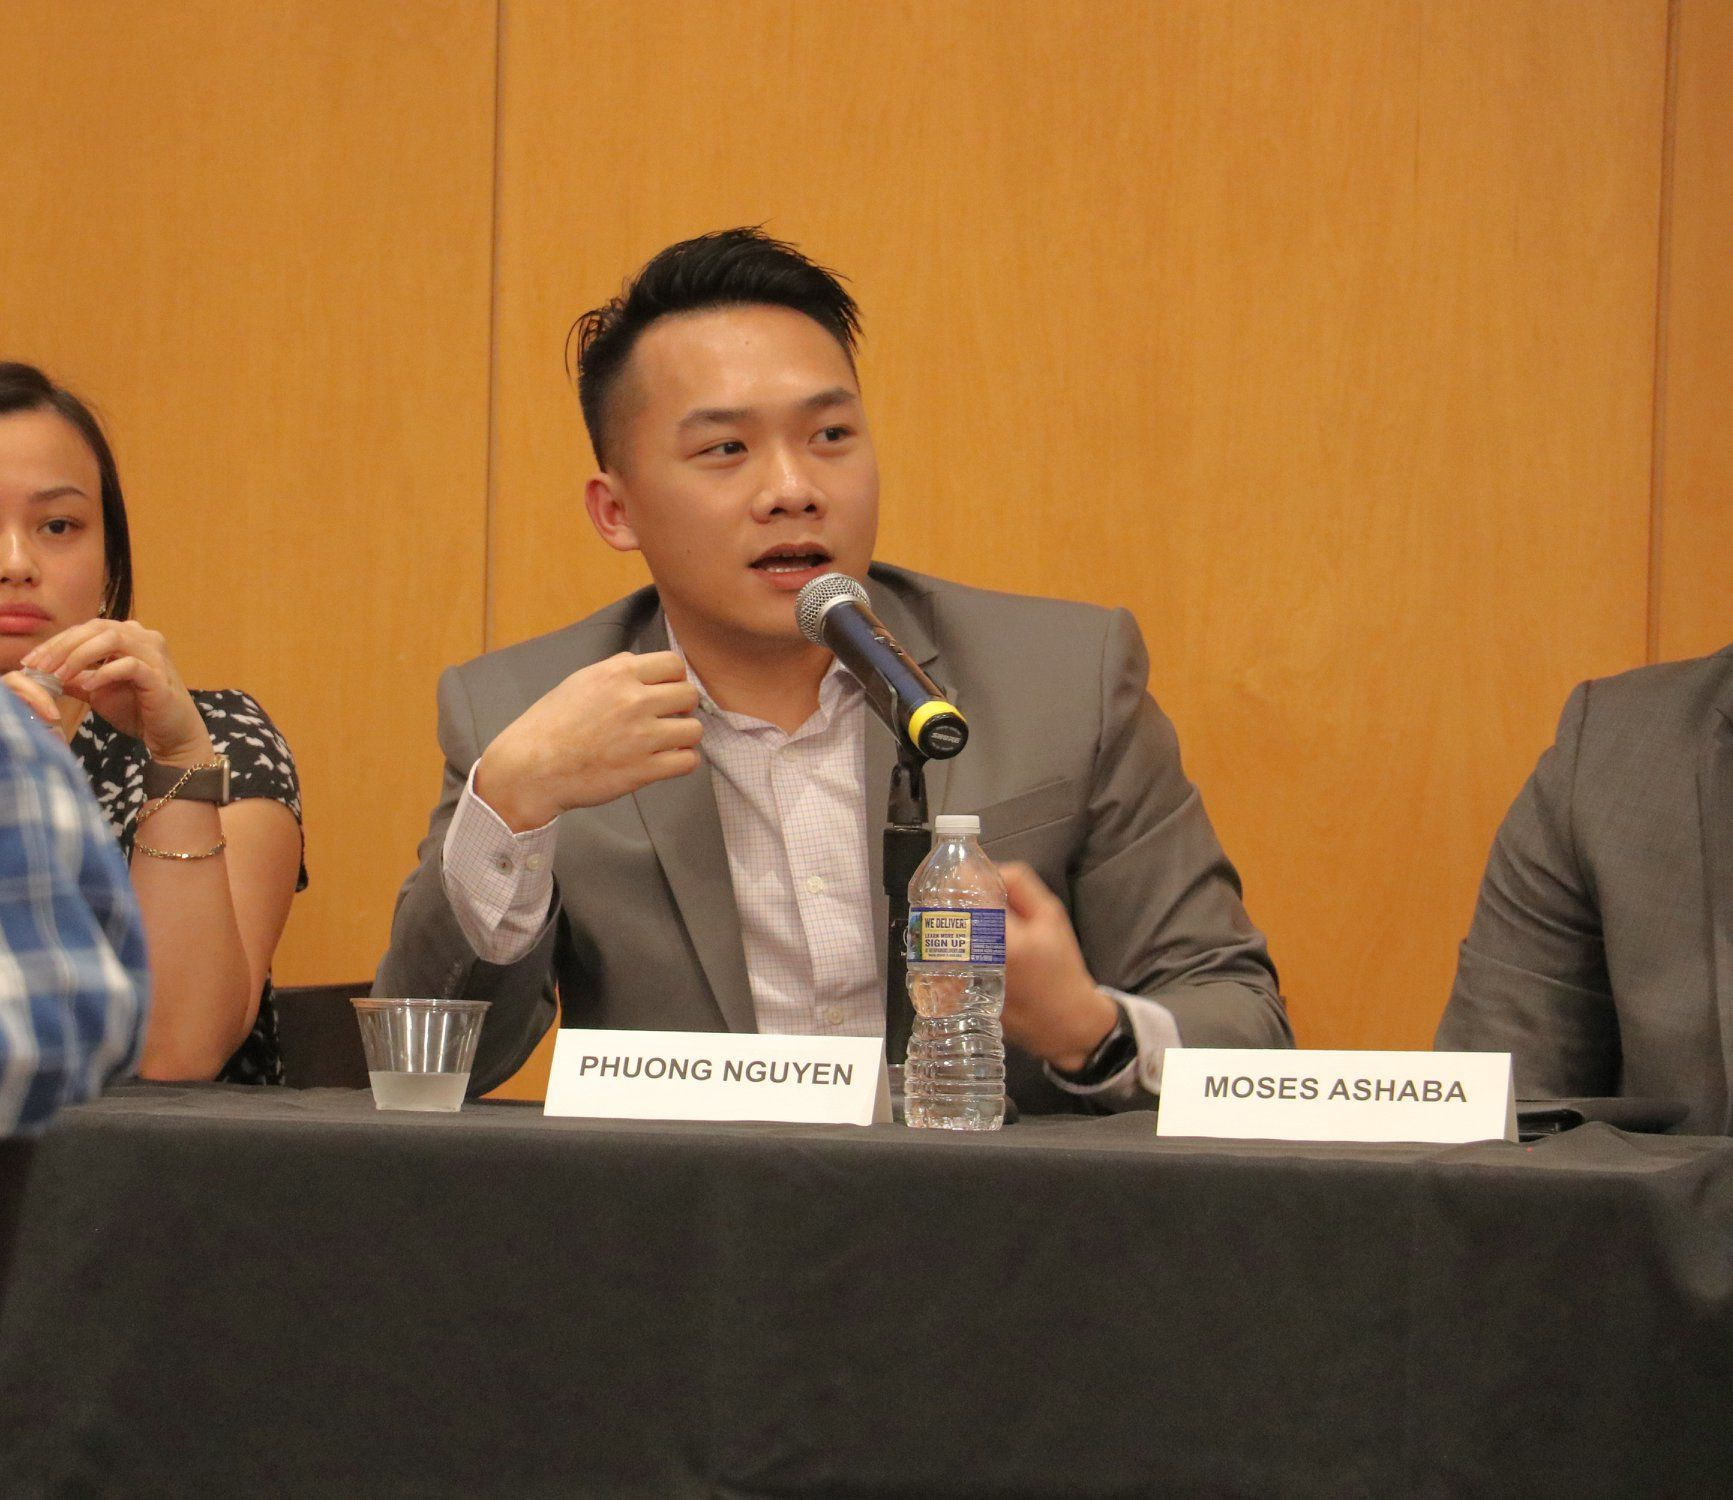 Student speaking during a panel discussion